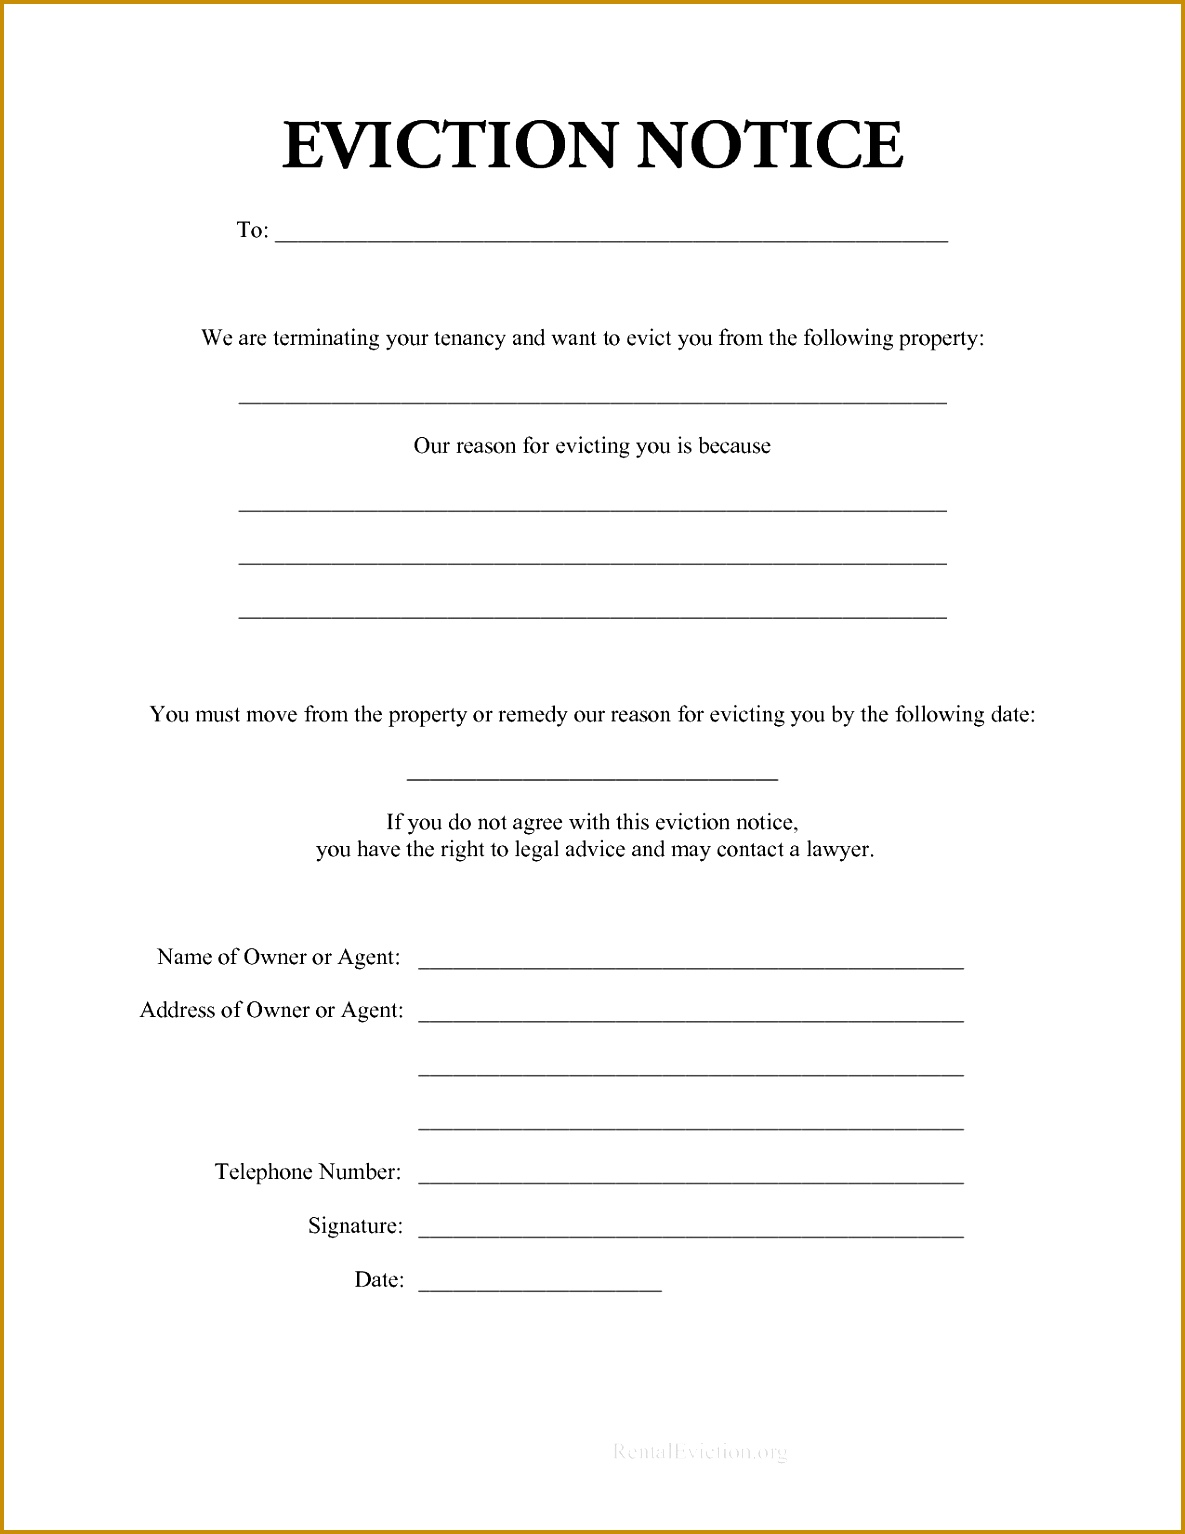 Printable eviction notice notices it resume cover letter sample print out rental g practicable depiction 11851534